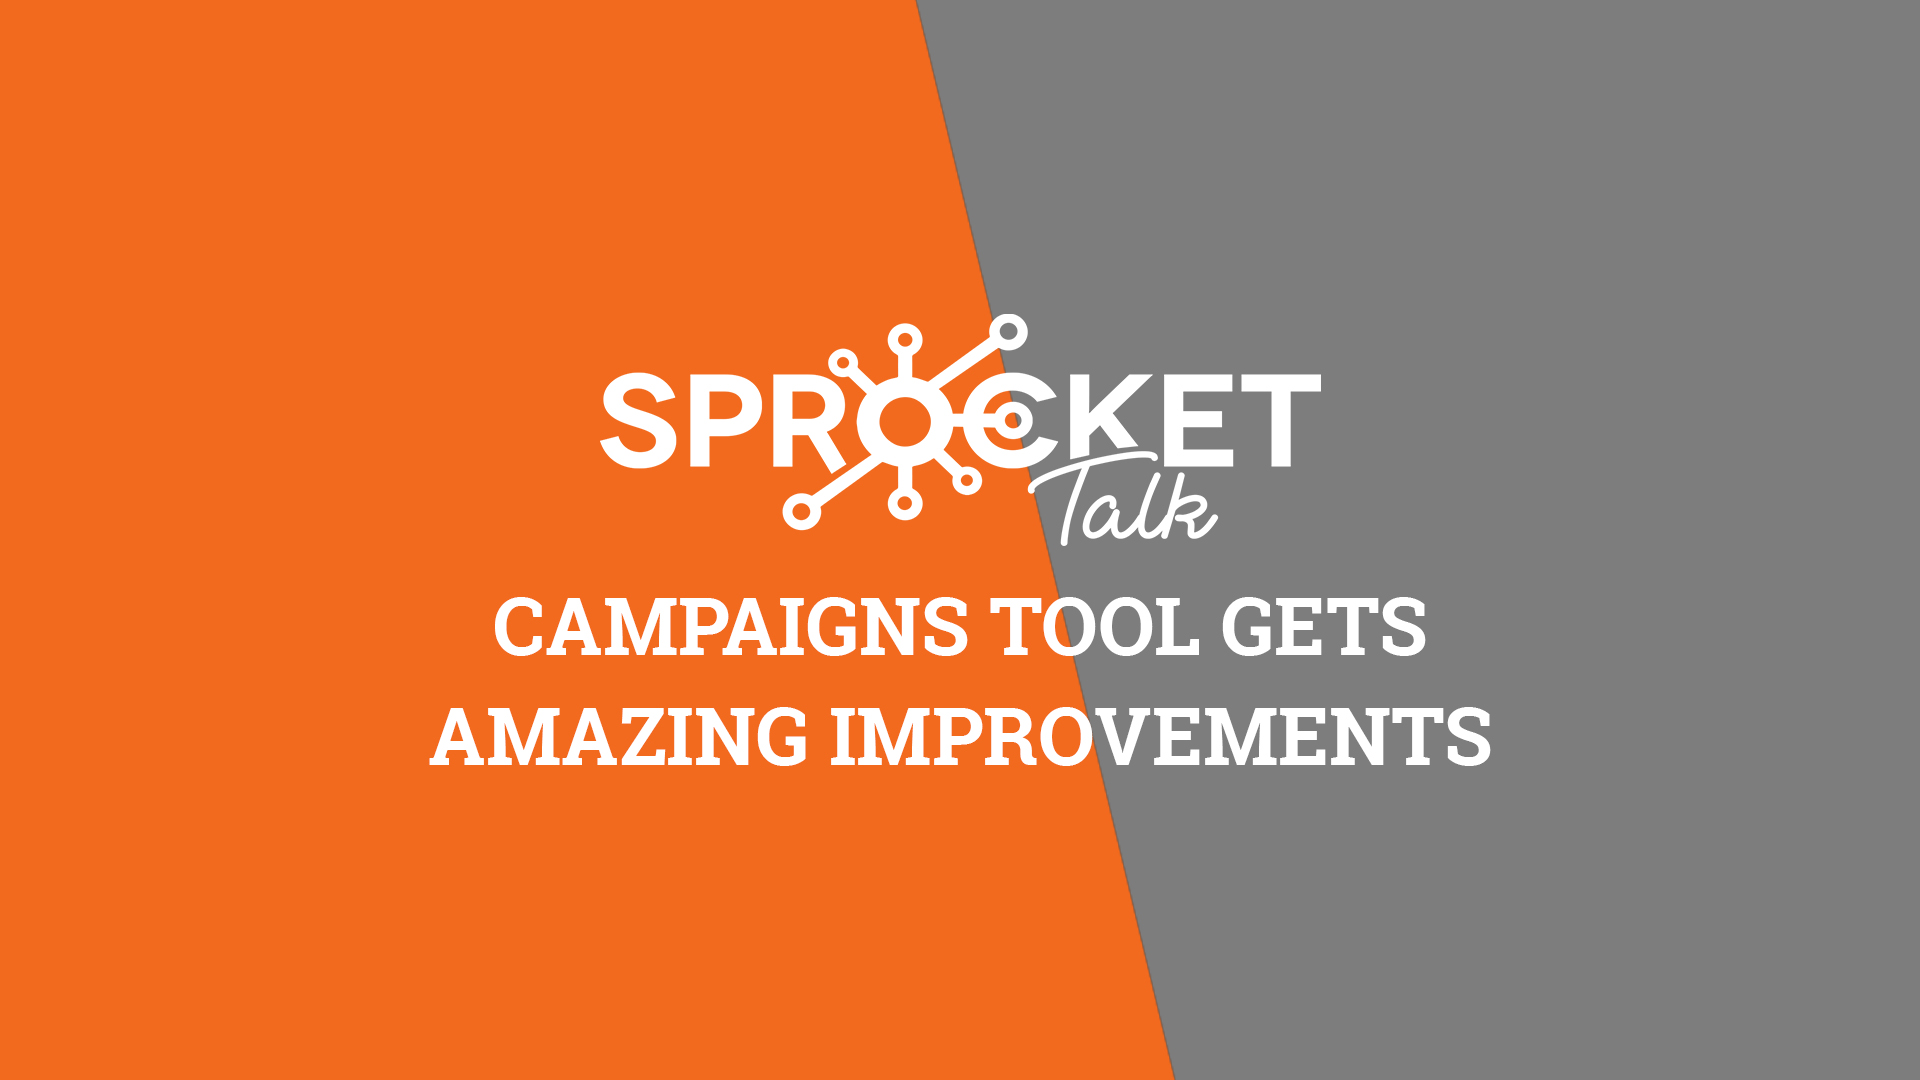 Campaigns Tool Gets Amazing Improvements